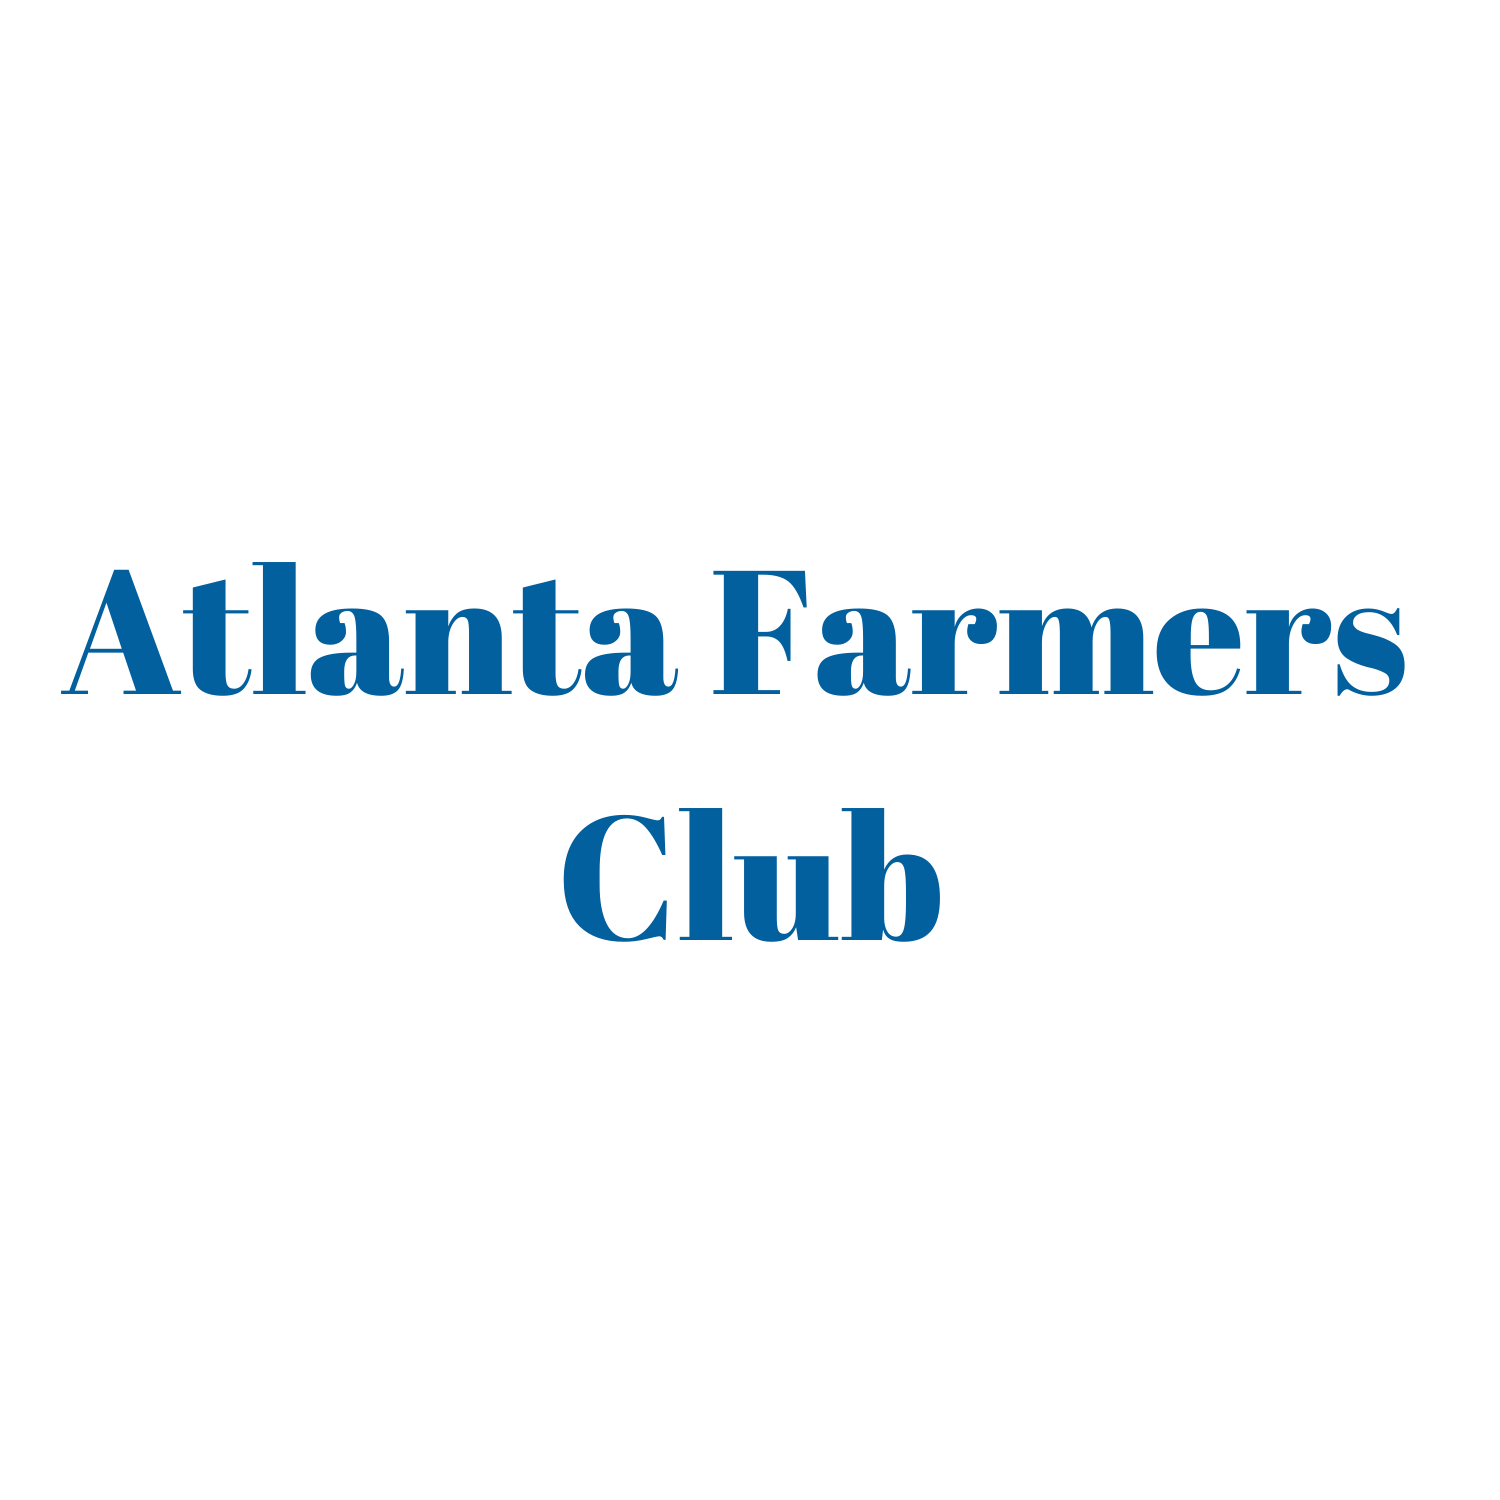 Atlanta Farmers Club